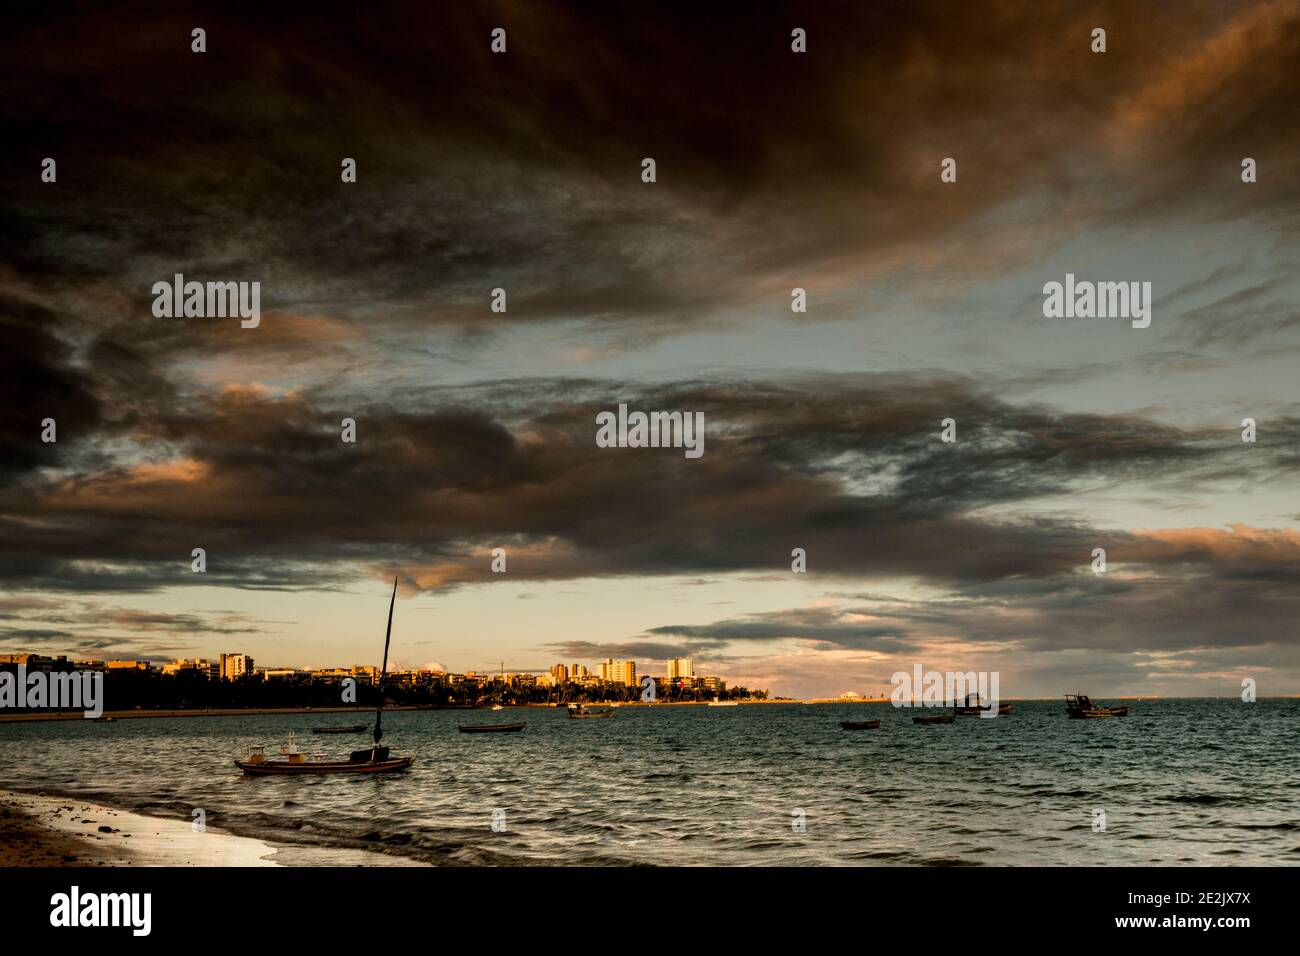 Sunset and tourist boats on a beach in Maceió, Brazil Stock Photo